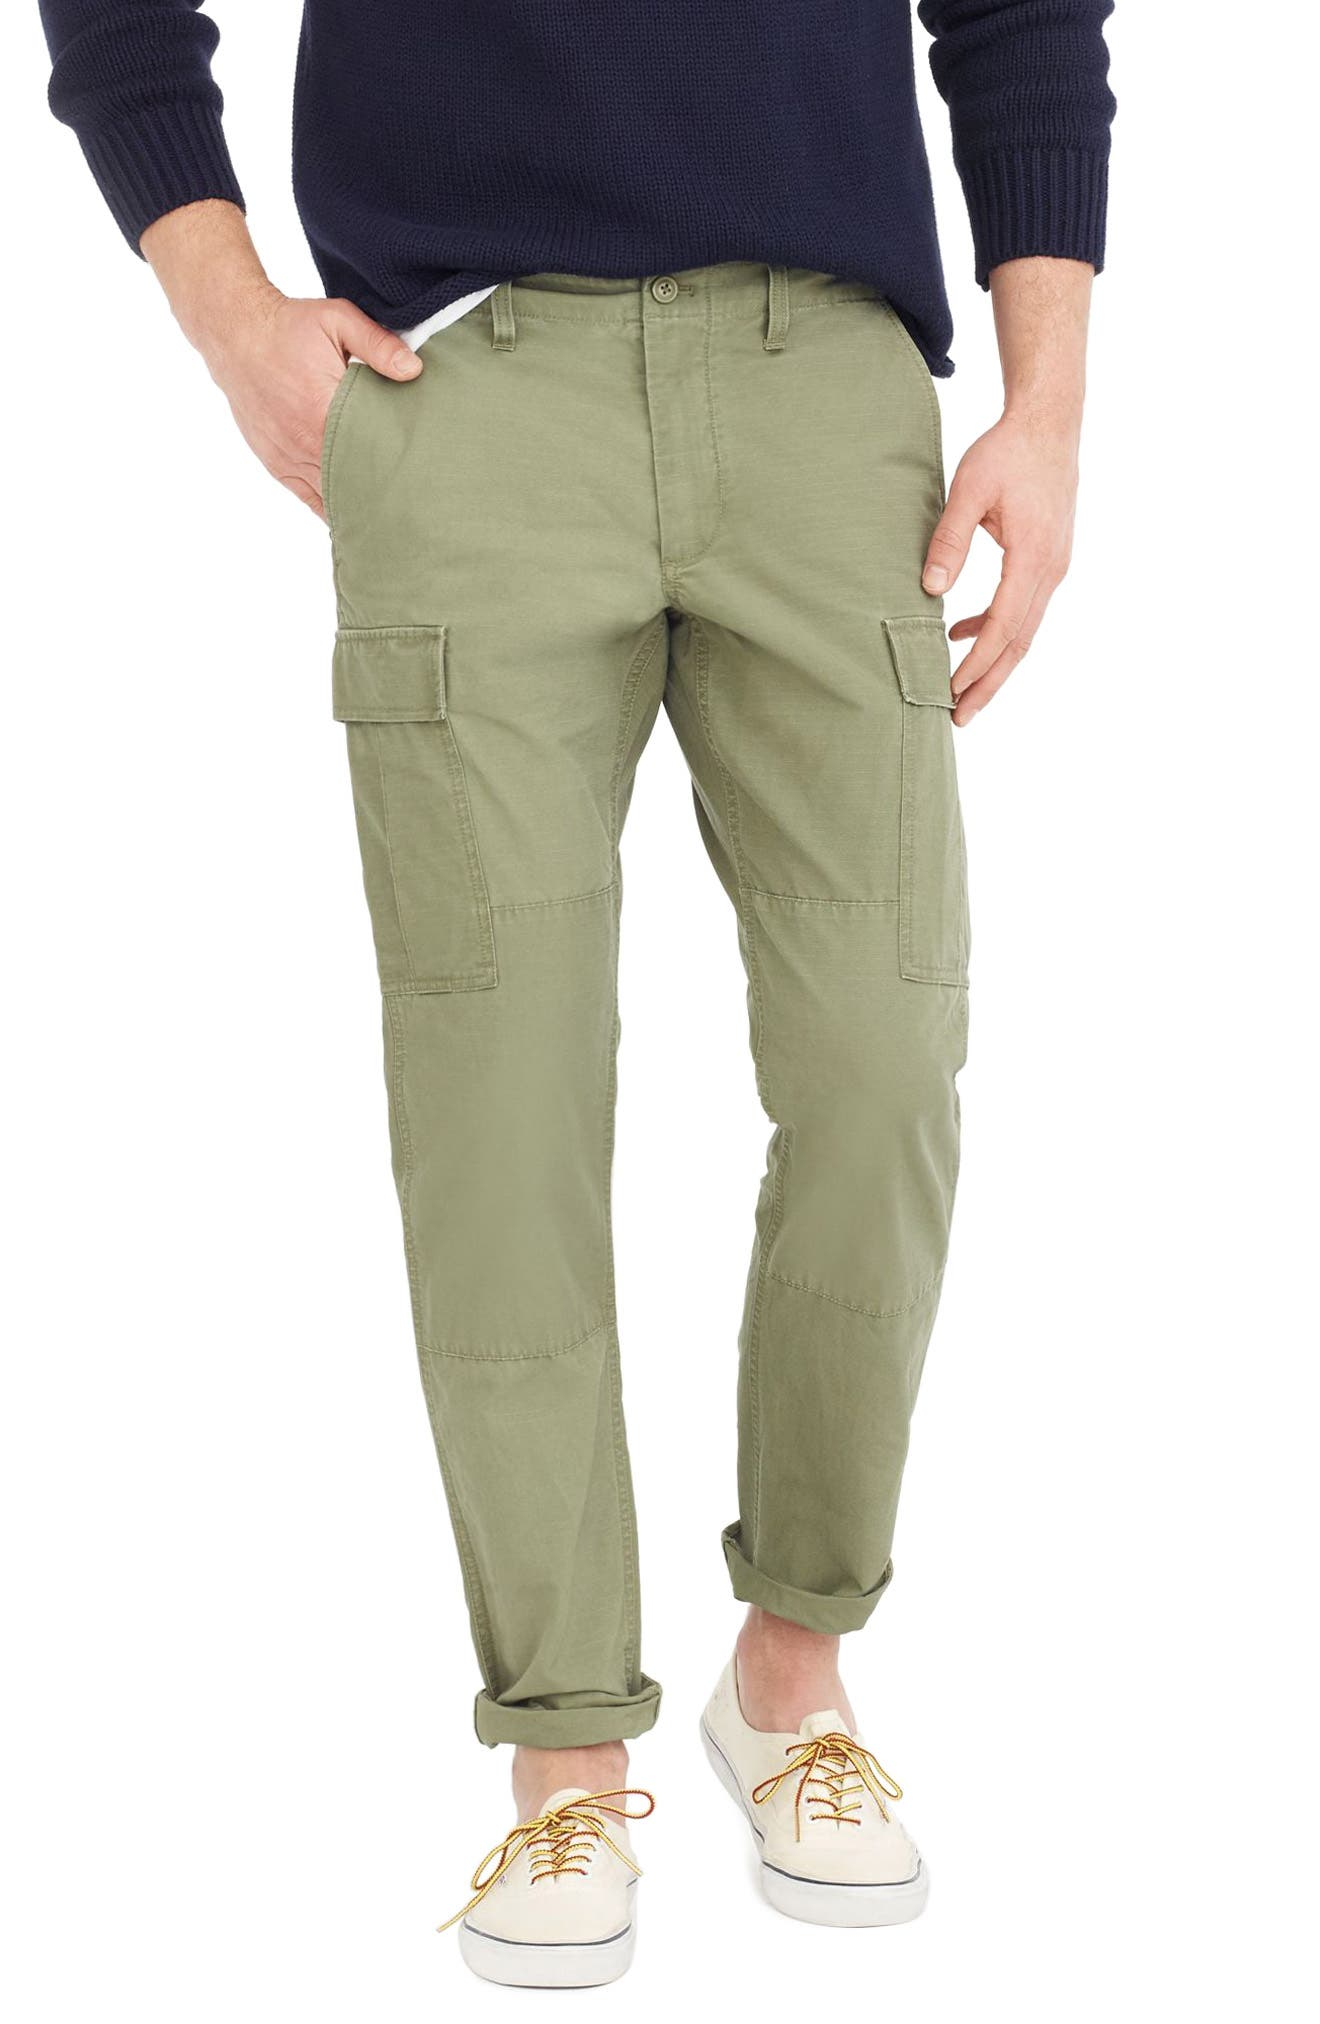 770 Straight Fit Ripstop Cargo Pants,                         Main,                         color, Brigade Olive